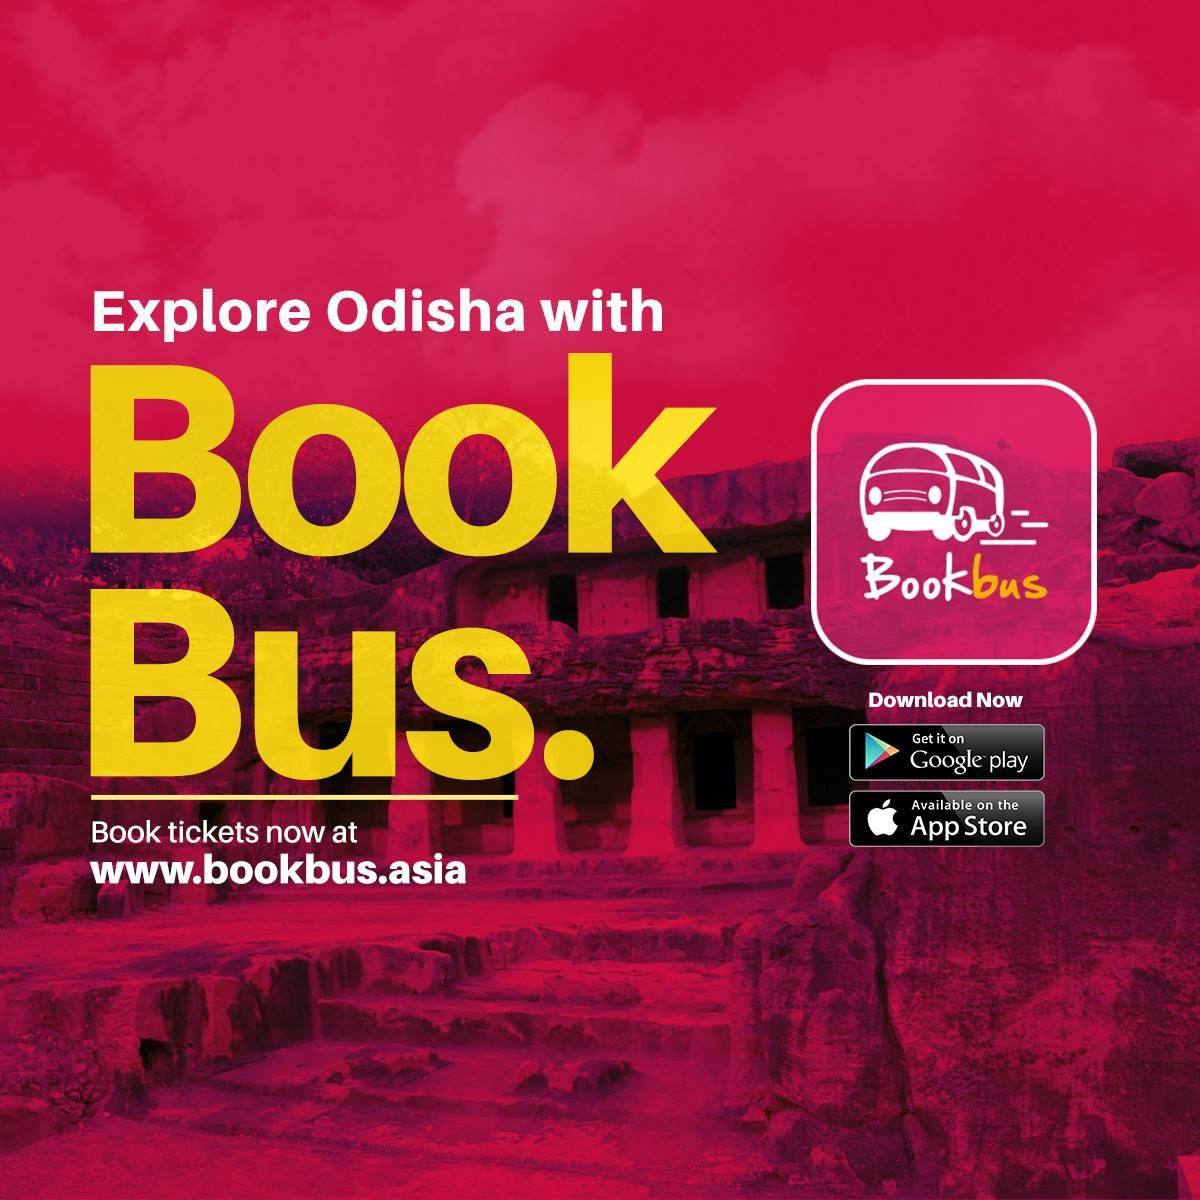 Bookbus Isodisha Sfirstbus Booking App That Enables Users To Book